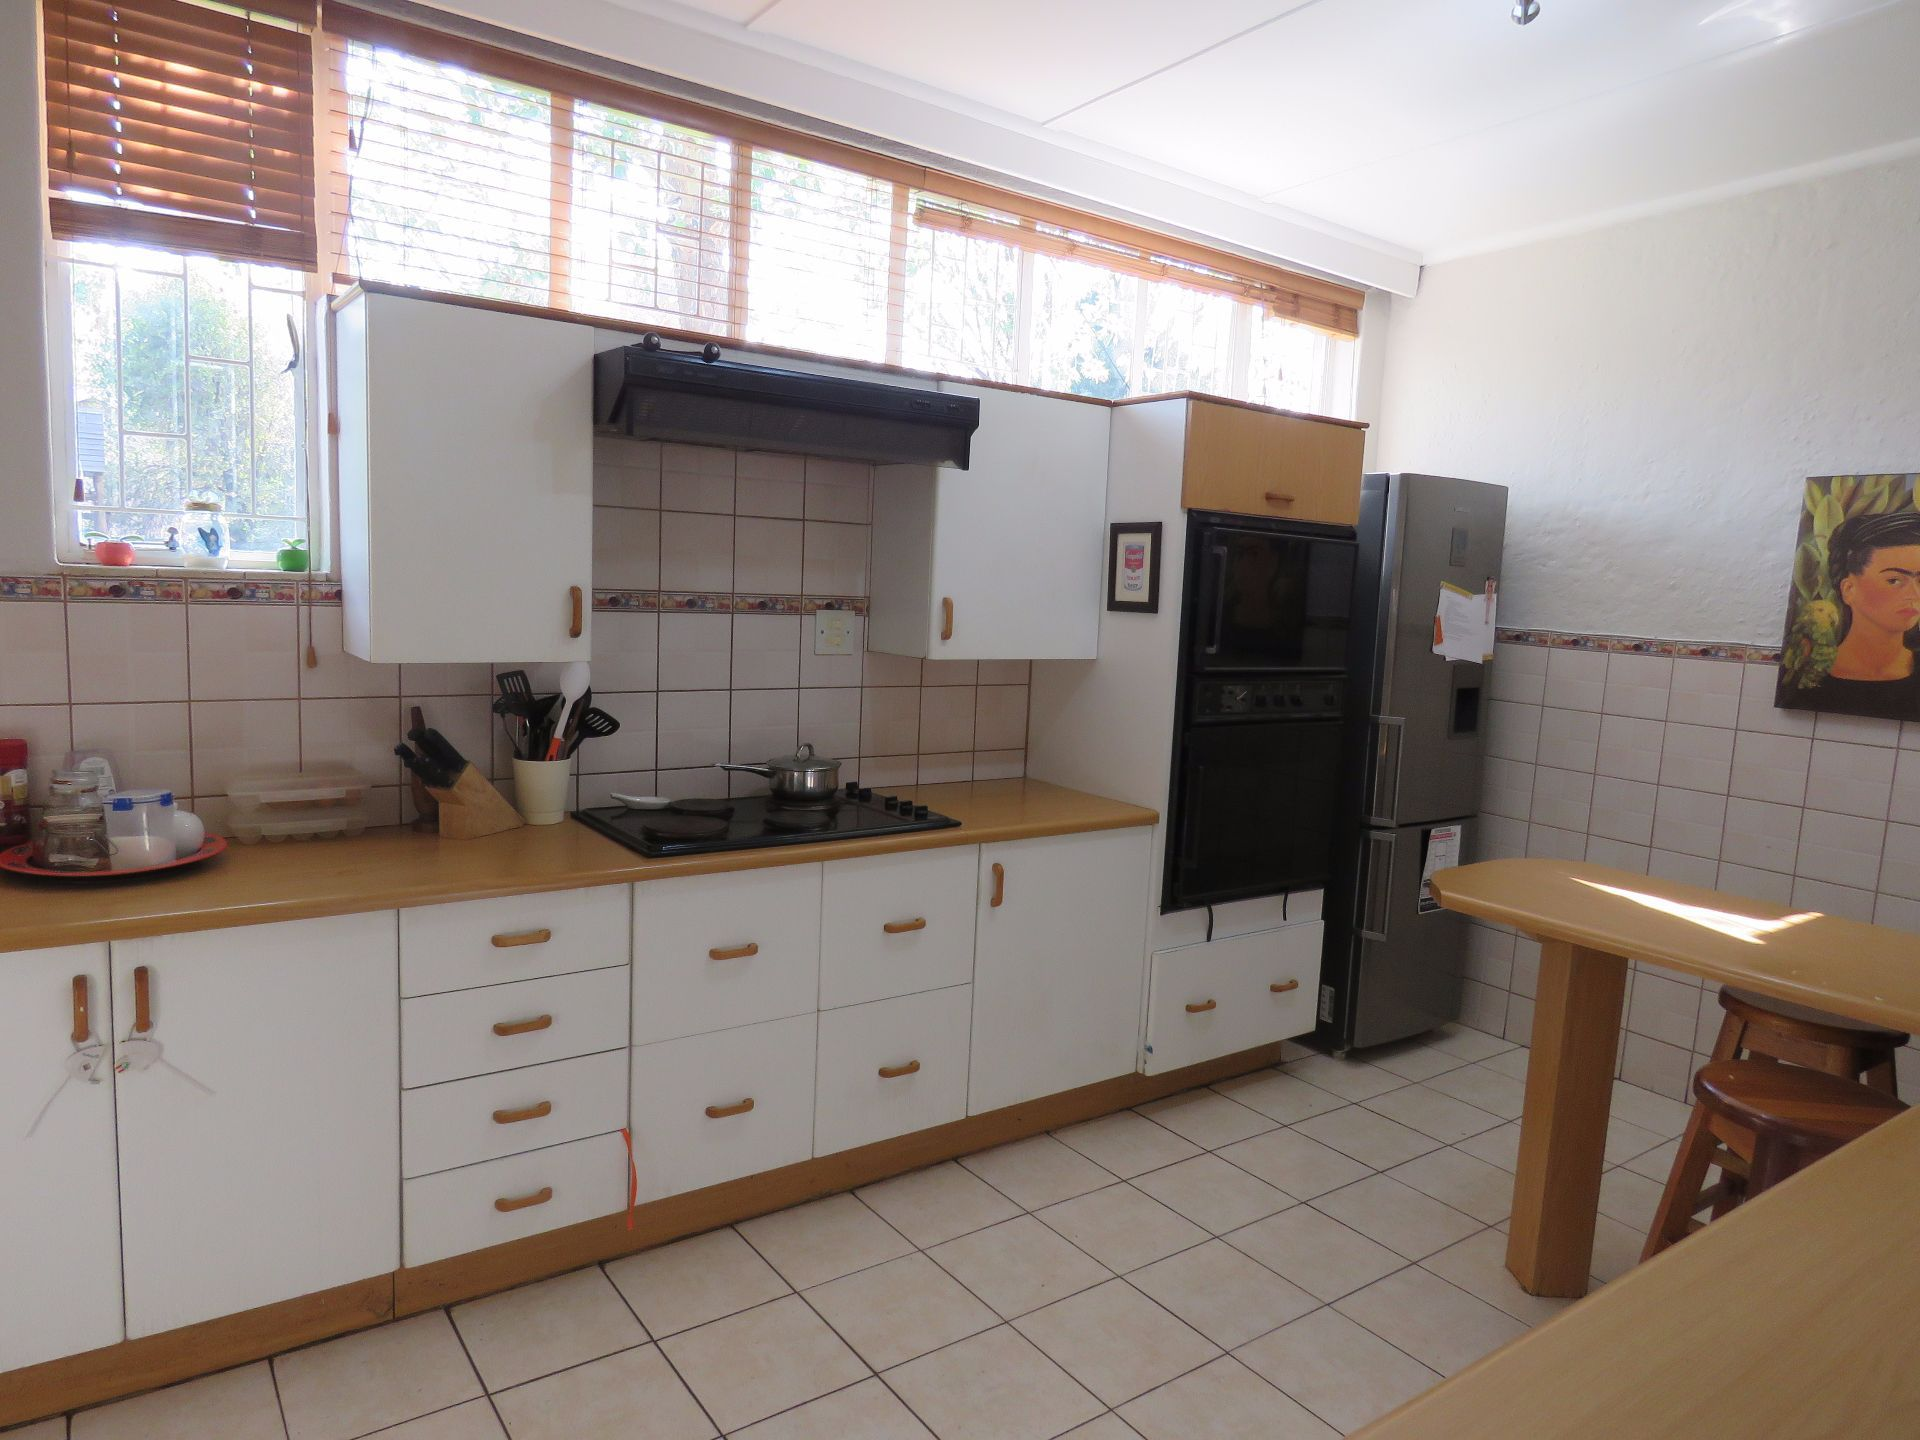 Potchefstroom Central property for sale. Ref No: 13543908. Picture no 10